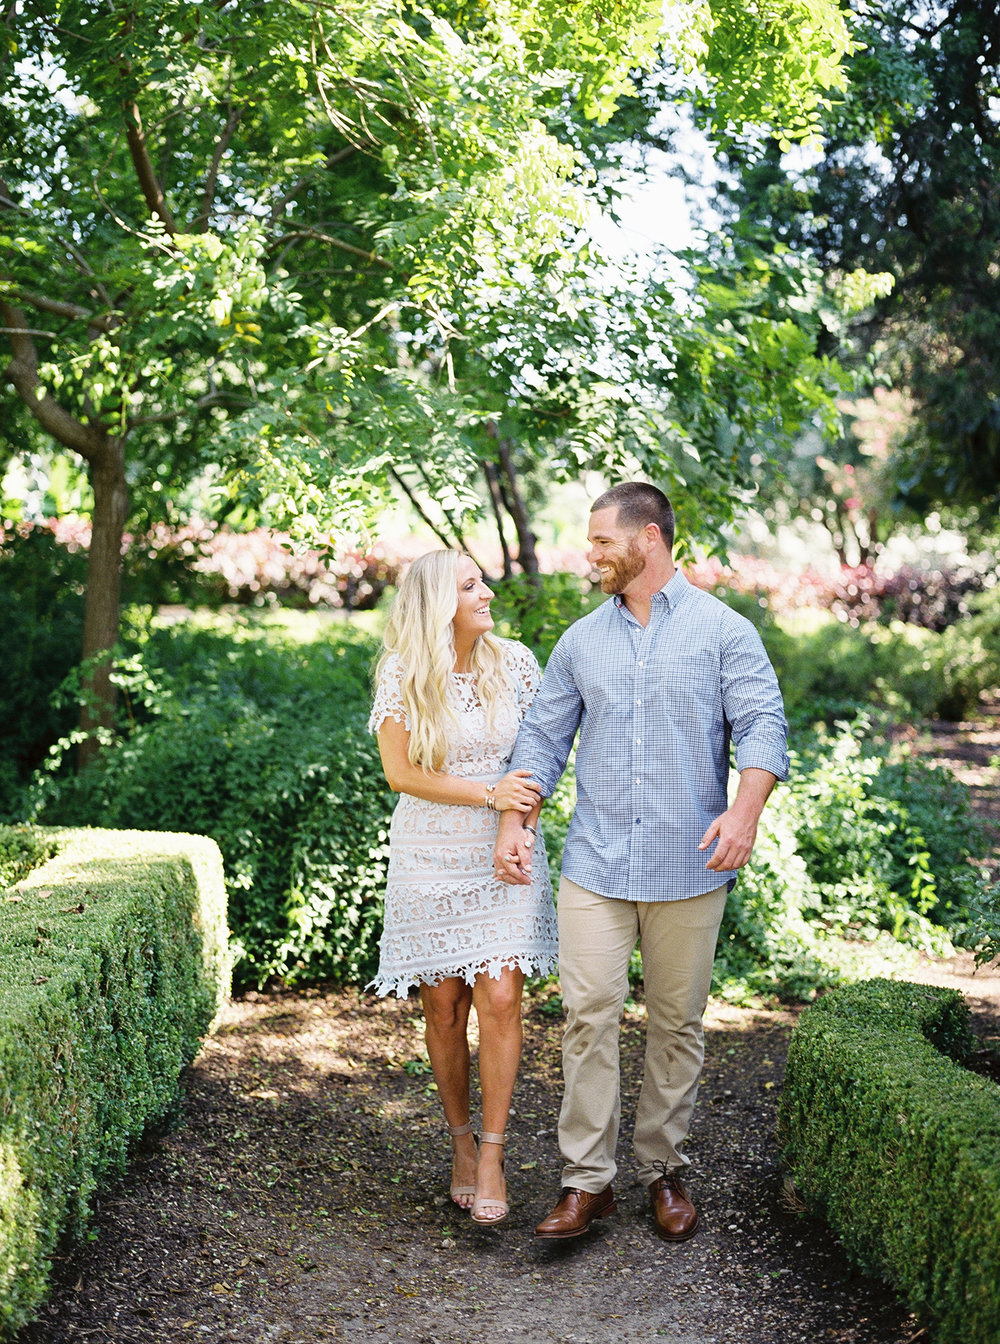 DFW Wedding Plannning | Allday Events | Dallas Arboretum Engagement Session